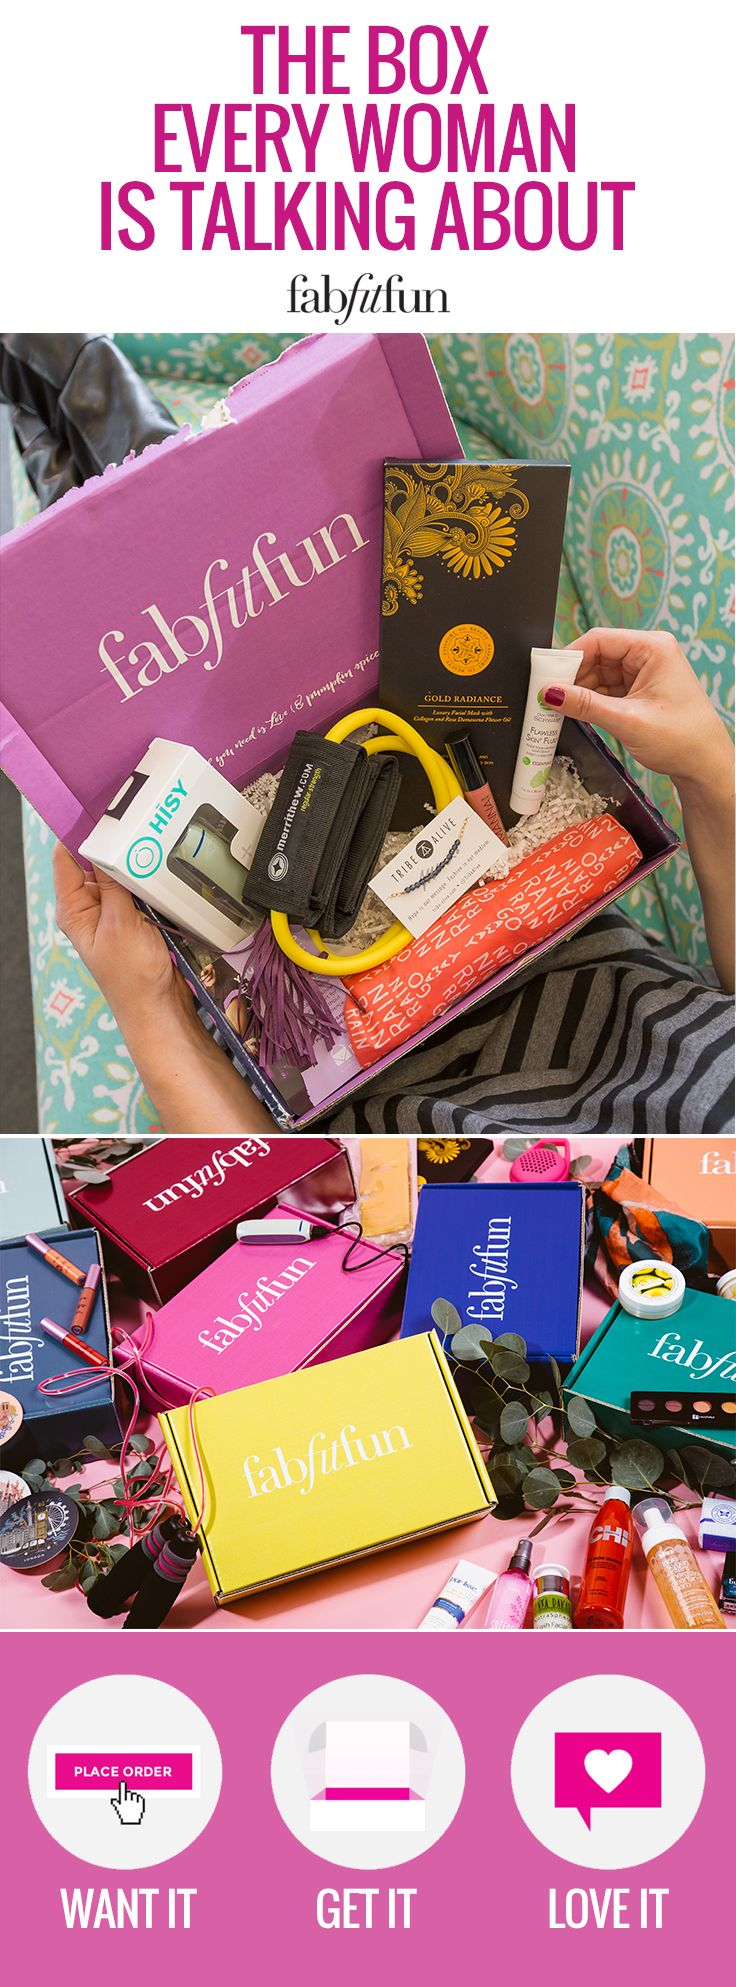 See what everyone's talking about and try a FabFitFun box today! From beauty products to fashion and fitness finds, FabFitFun is more than just beauty samples. It's a lifestyle in a box with more than $200 worth of amazing products inside!